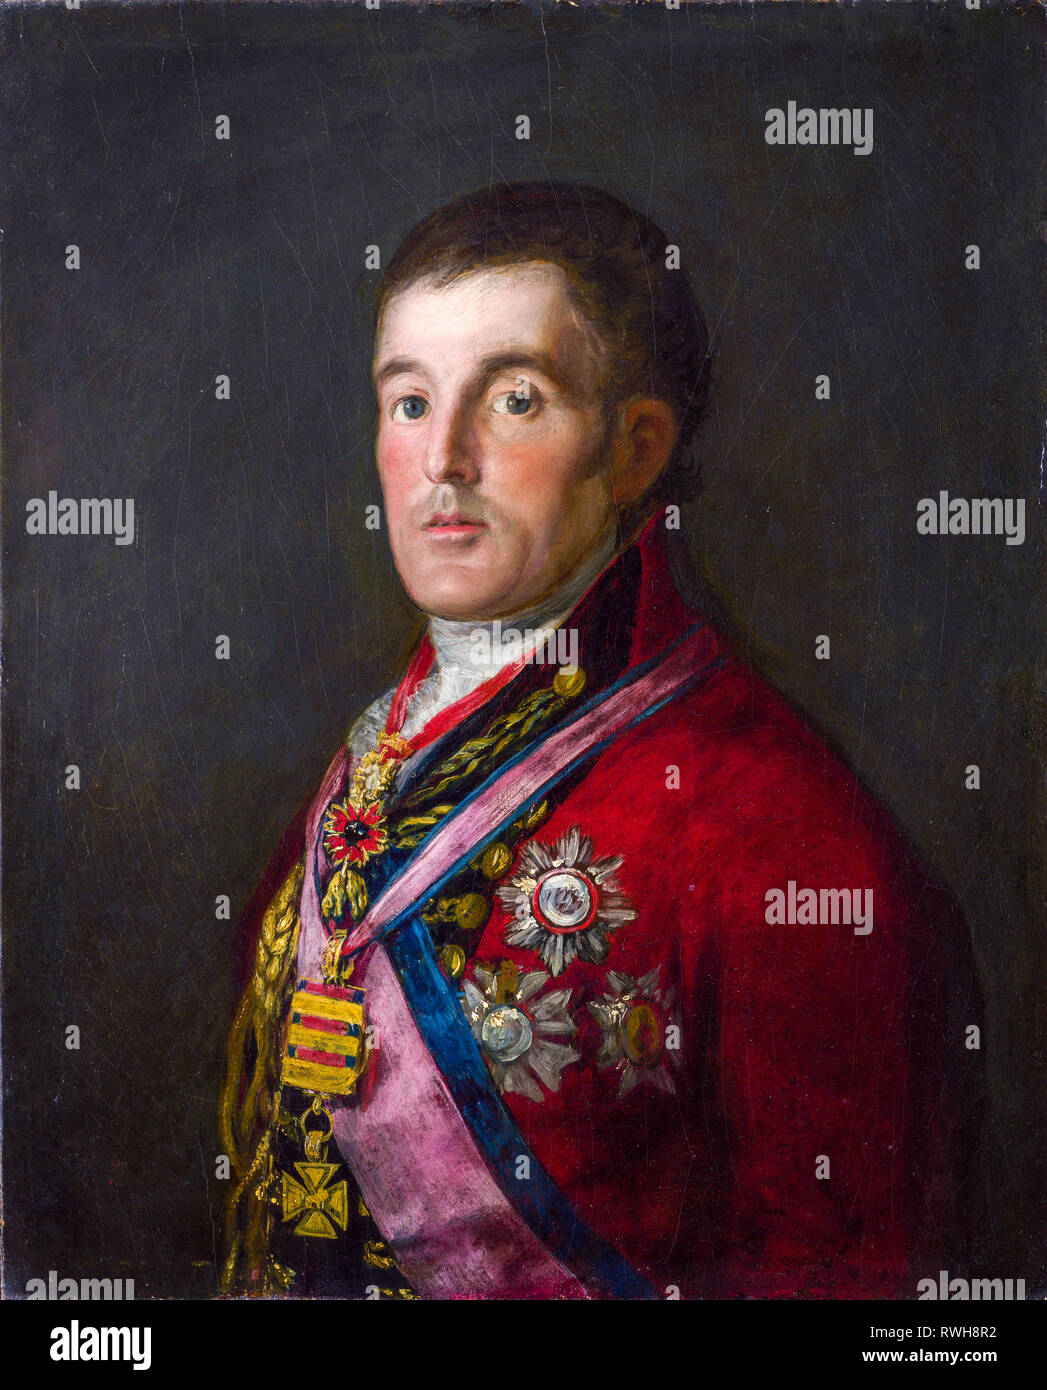 Arthur Wellesley, 1st Duke of Wellington (1769-1852), portrait painting by Francisco Goya, c. 1812-1814 - Stock Image